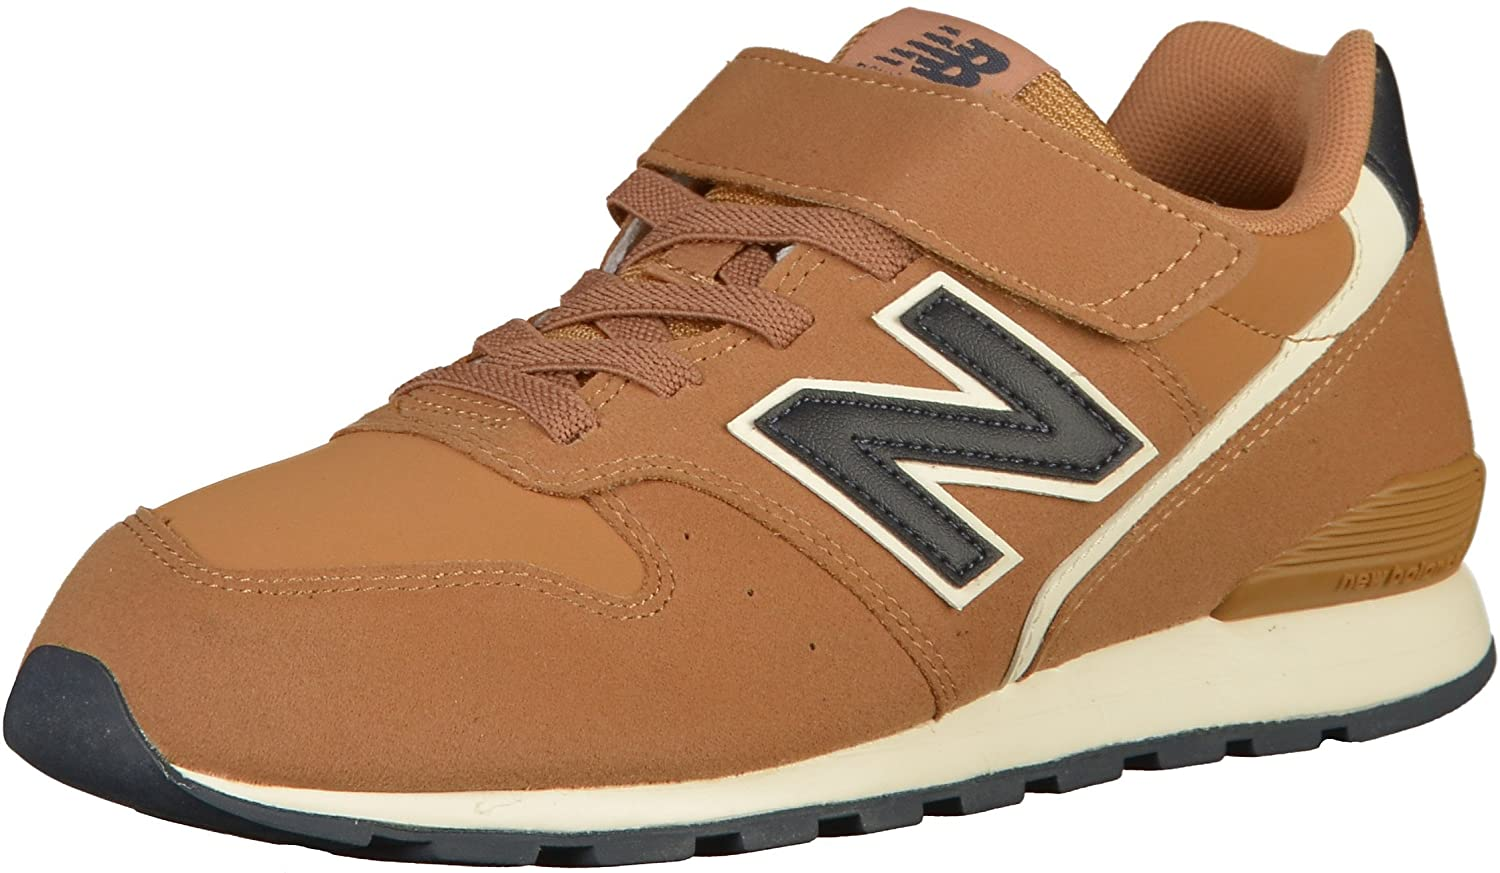 New Balance KV574YTY, Zapatillas infantil 28 EU|Marròn